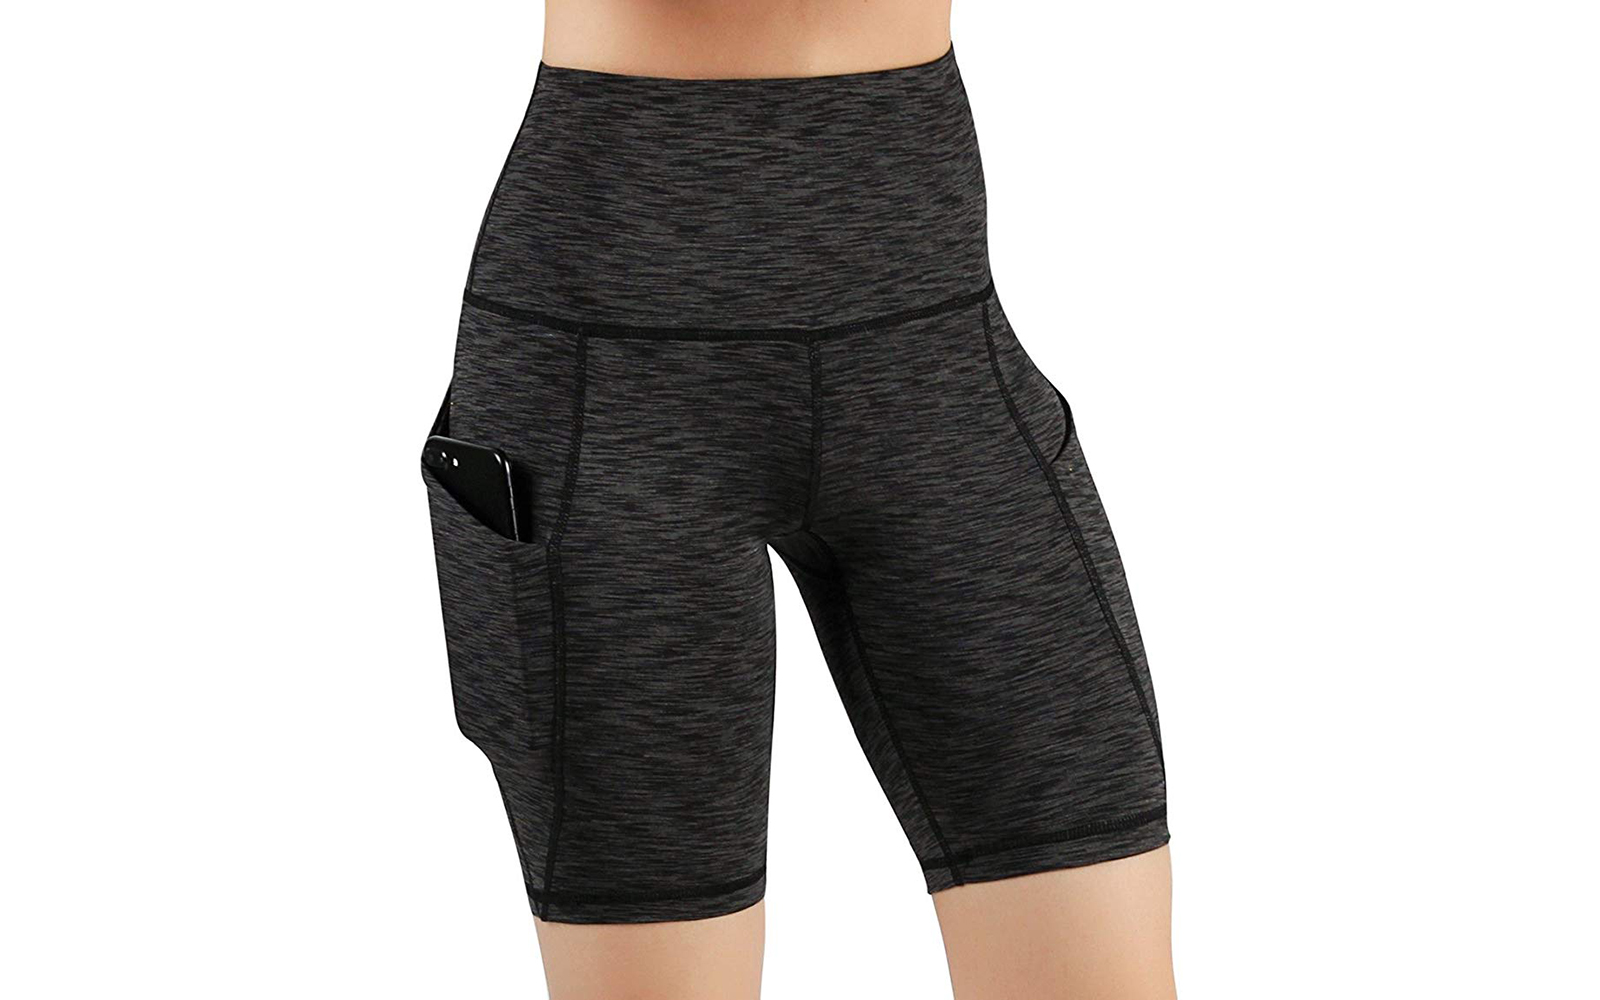 ODODOS High Waist Out Pocket Yoga Short